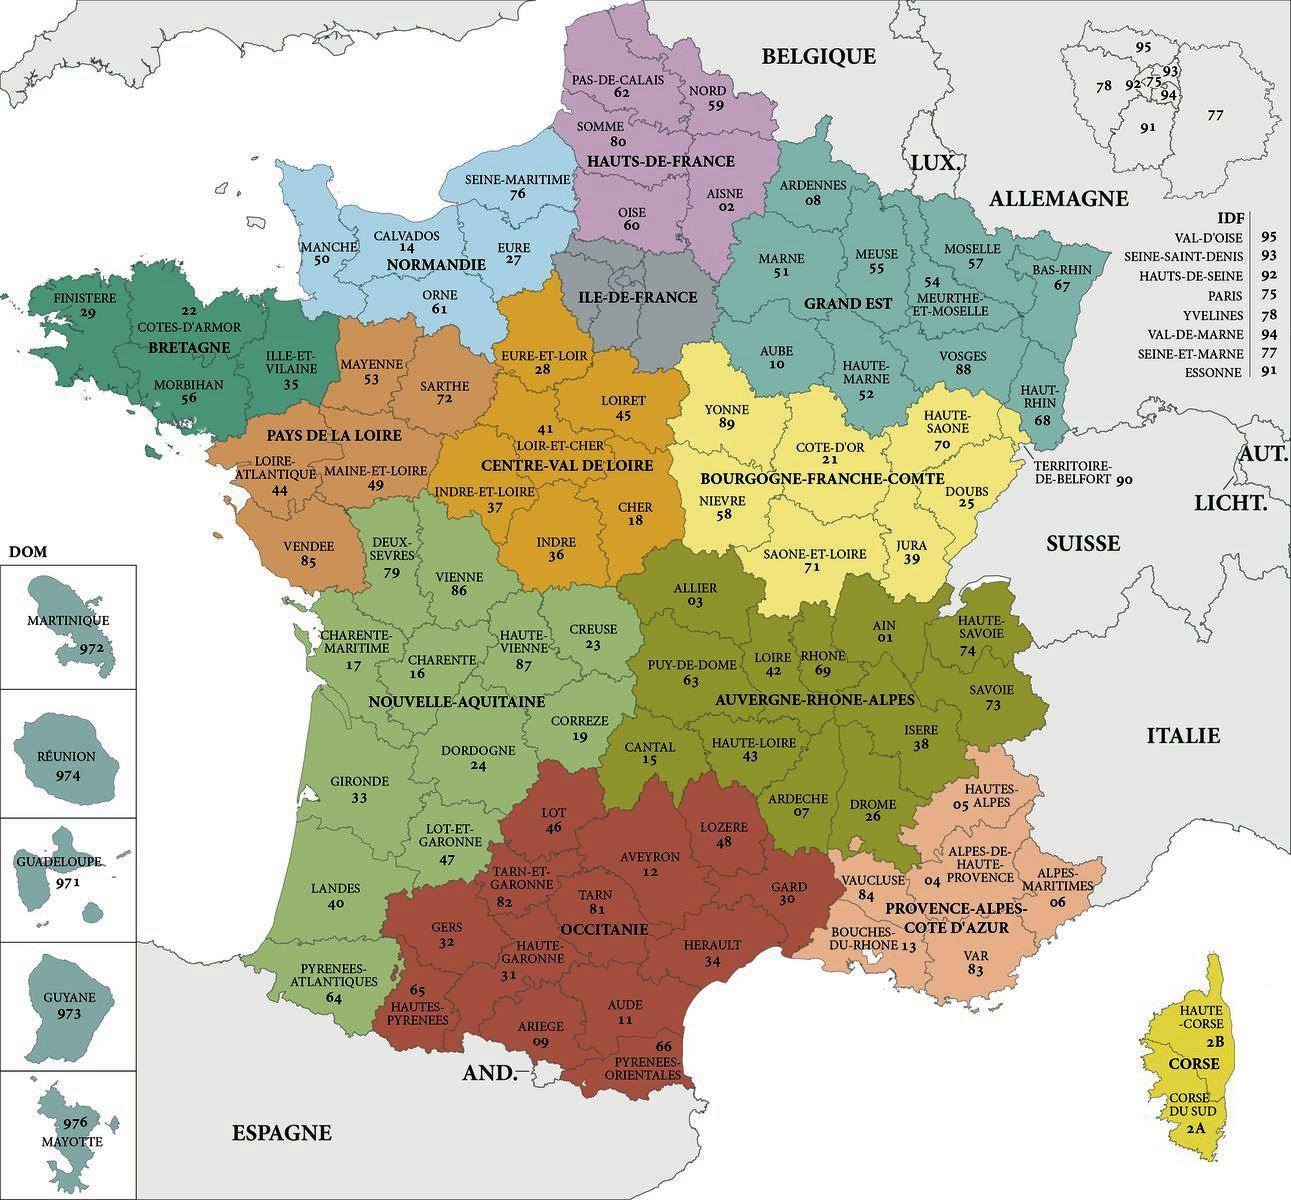 Carte De France Departements : Carte Des Départements De France avec Imprimer Une Carte De France